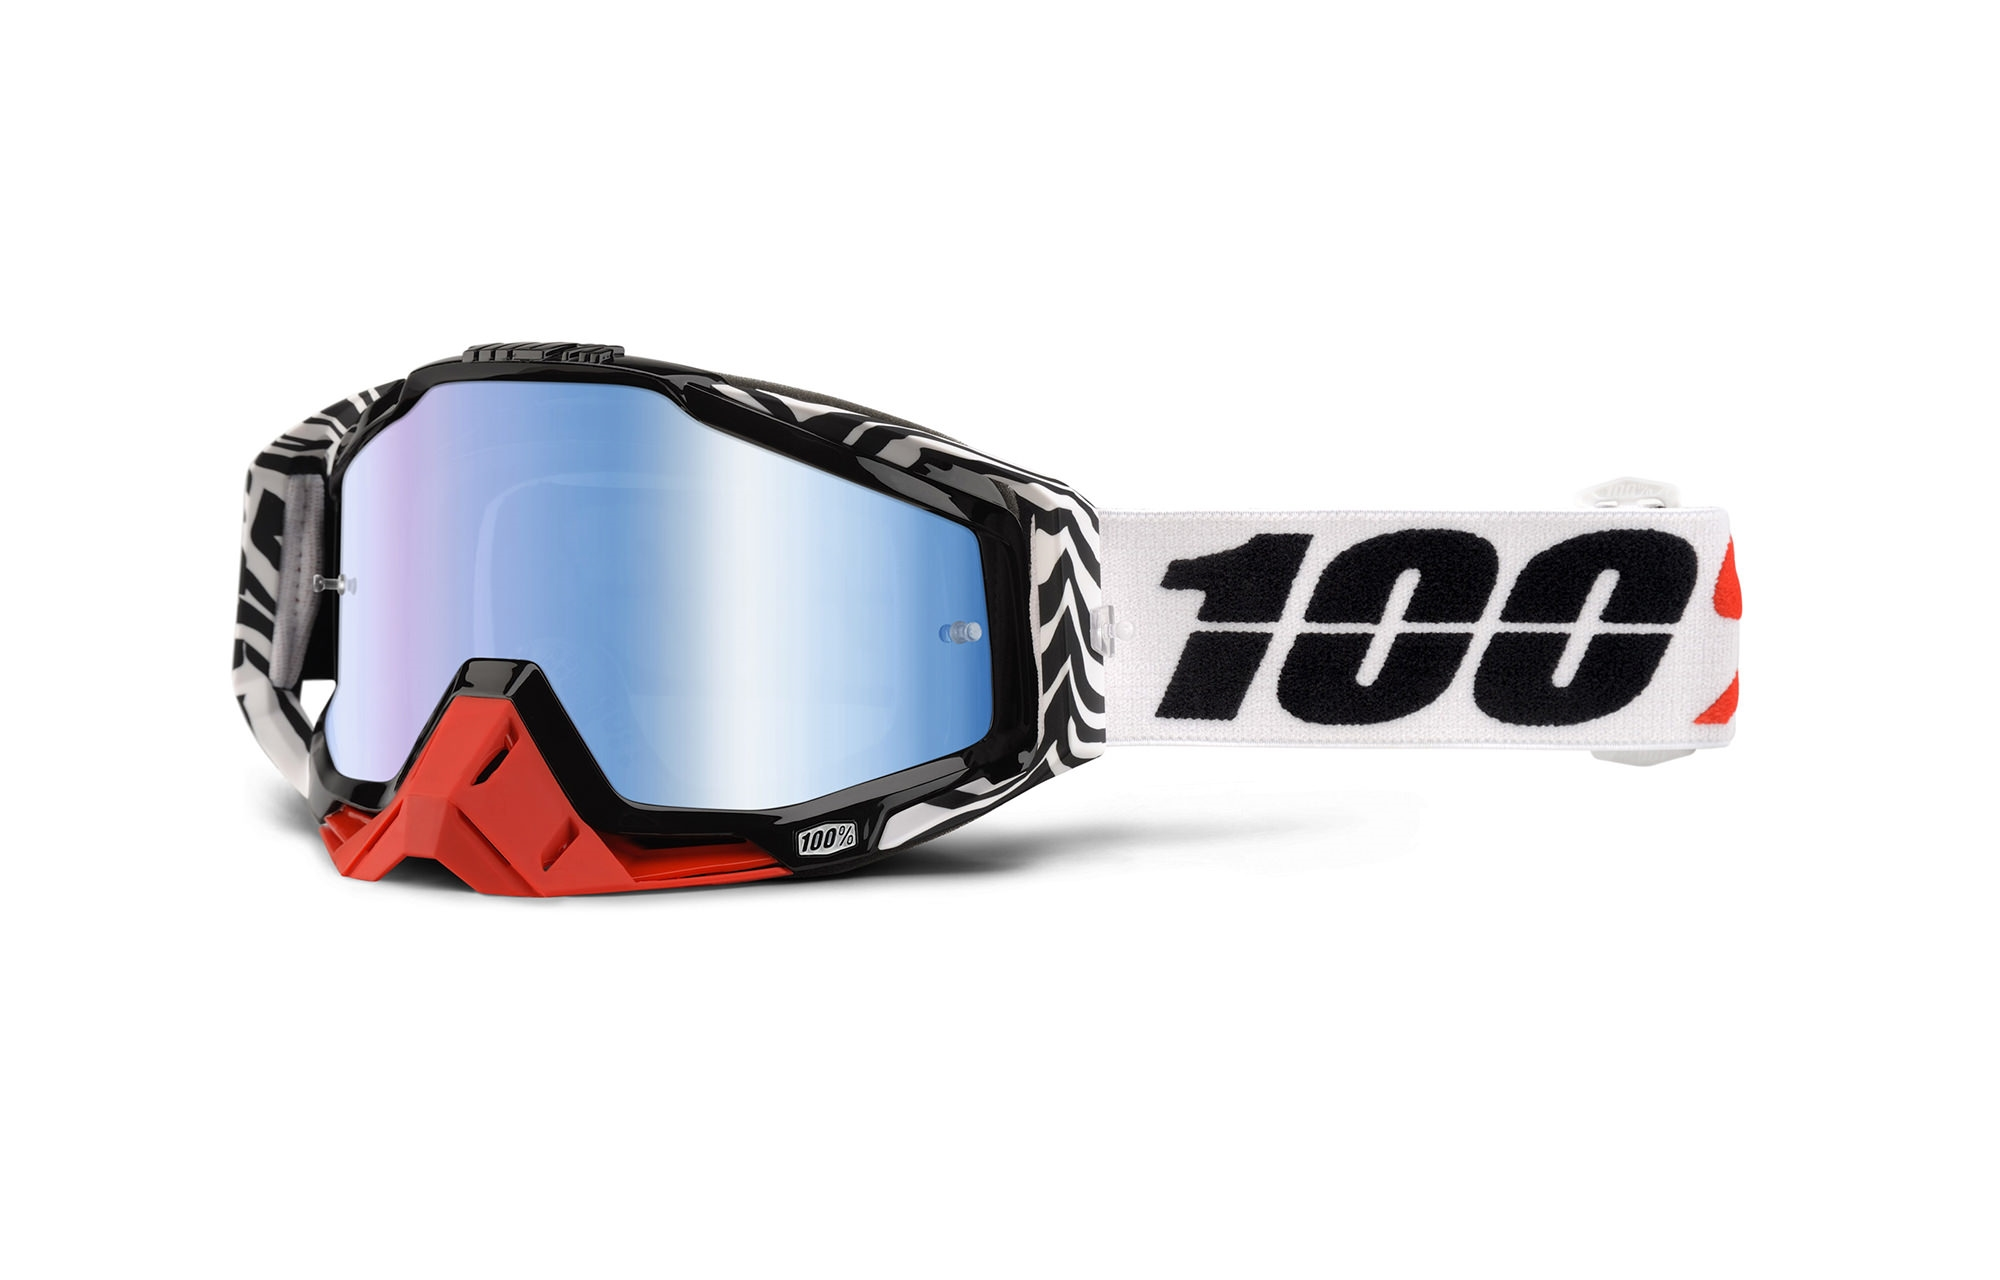 k swiss shoes tubes 100% goggles racecraft